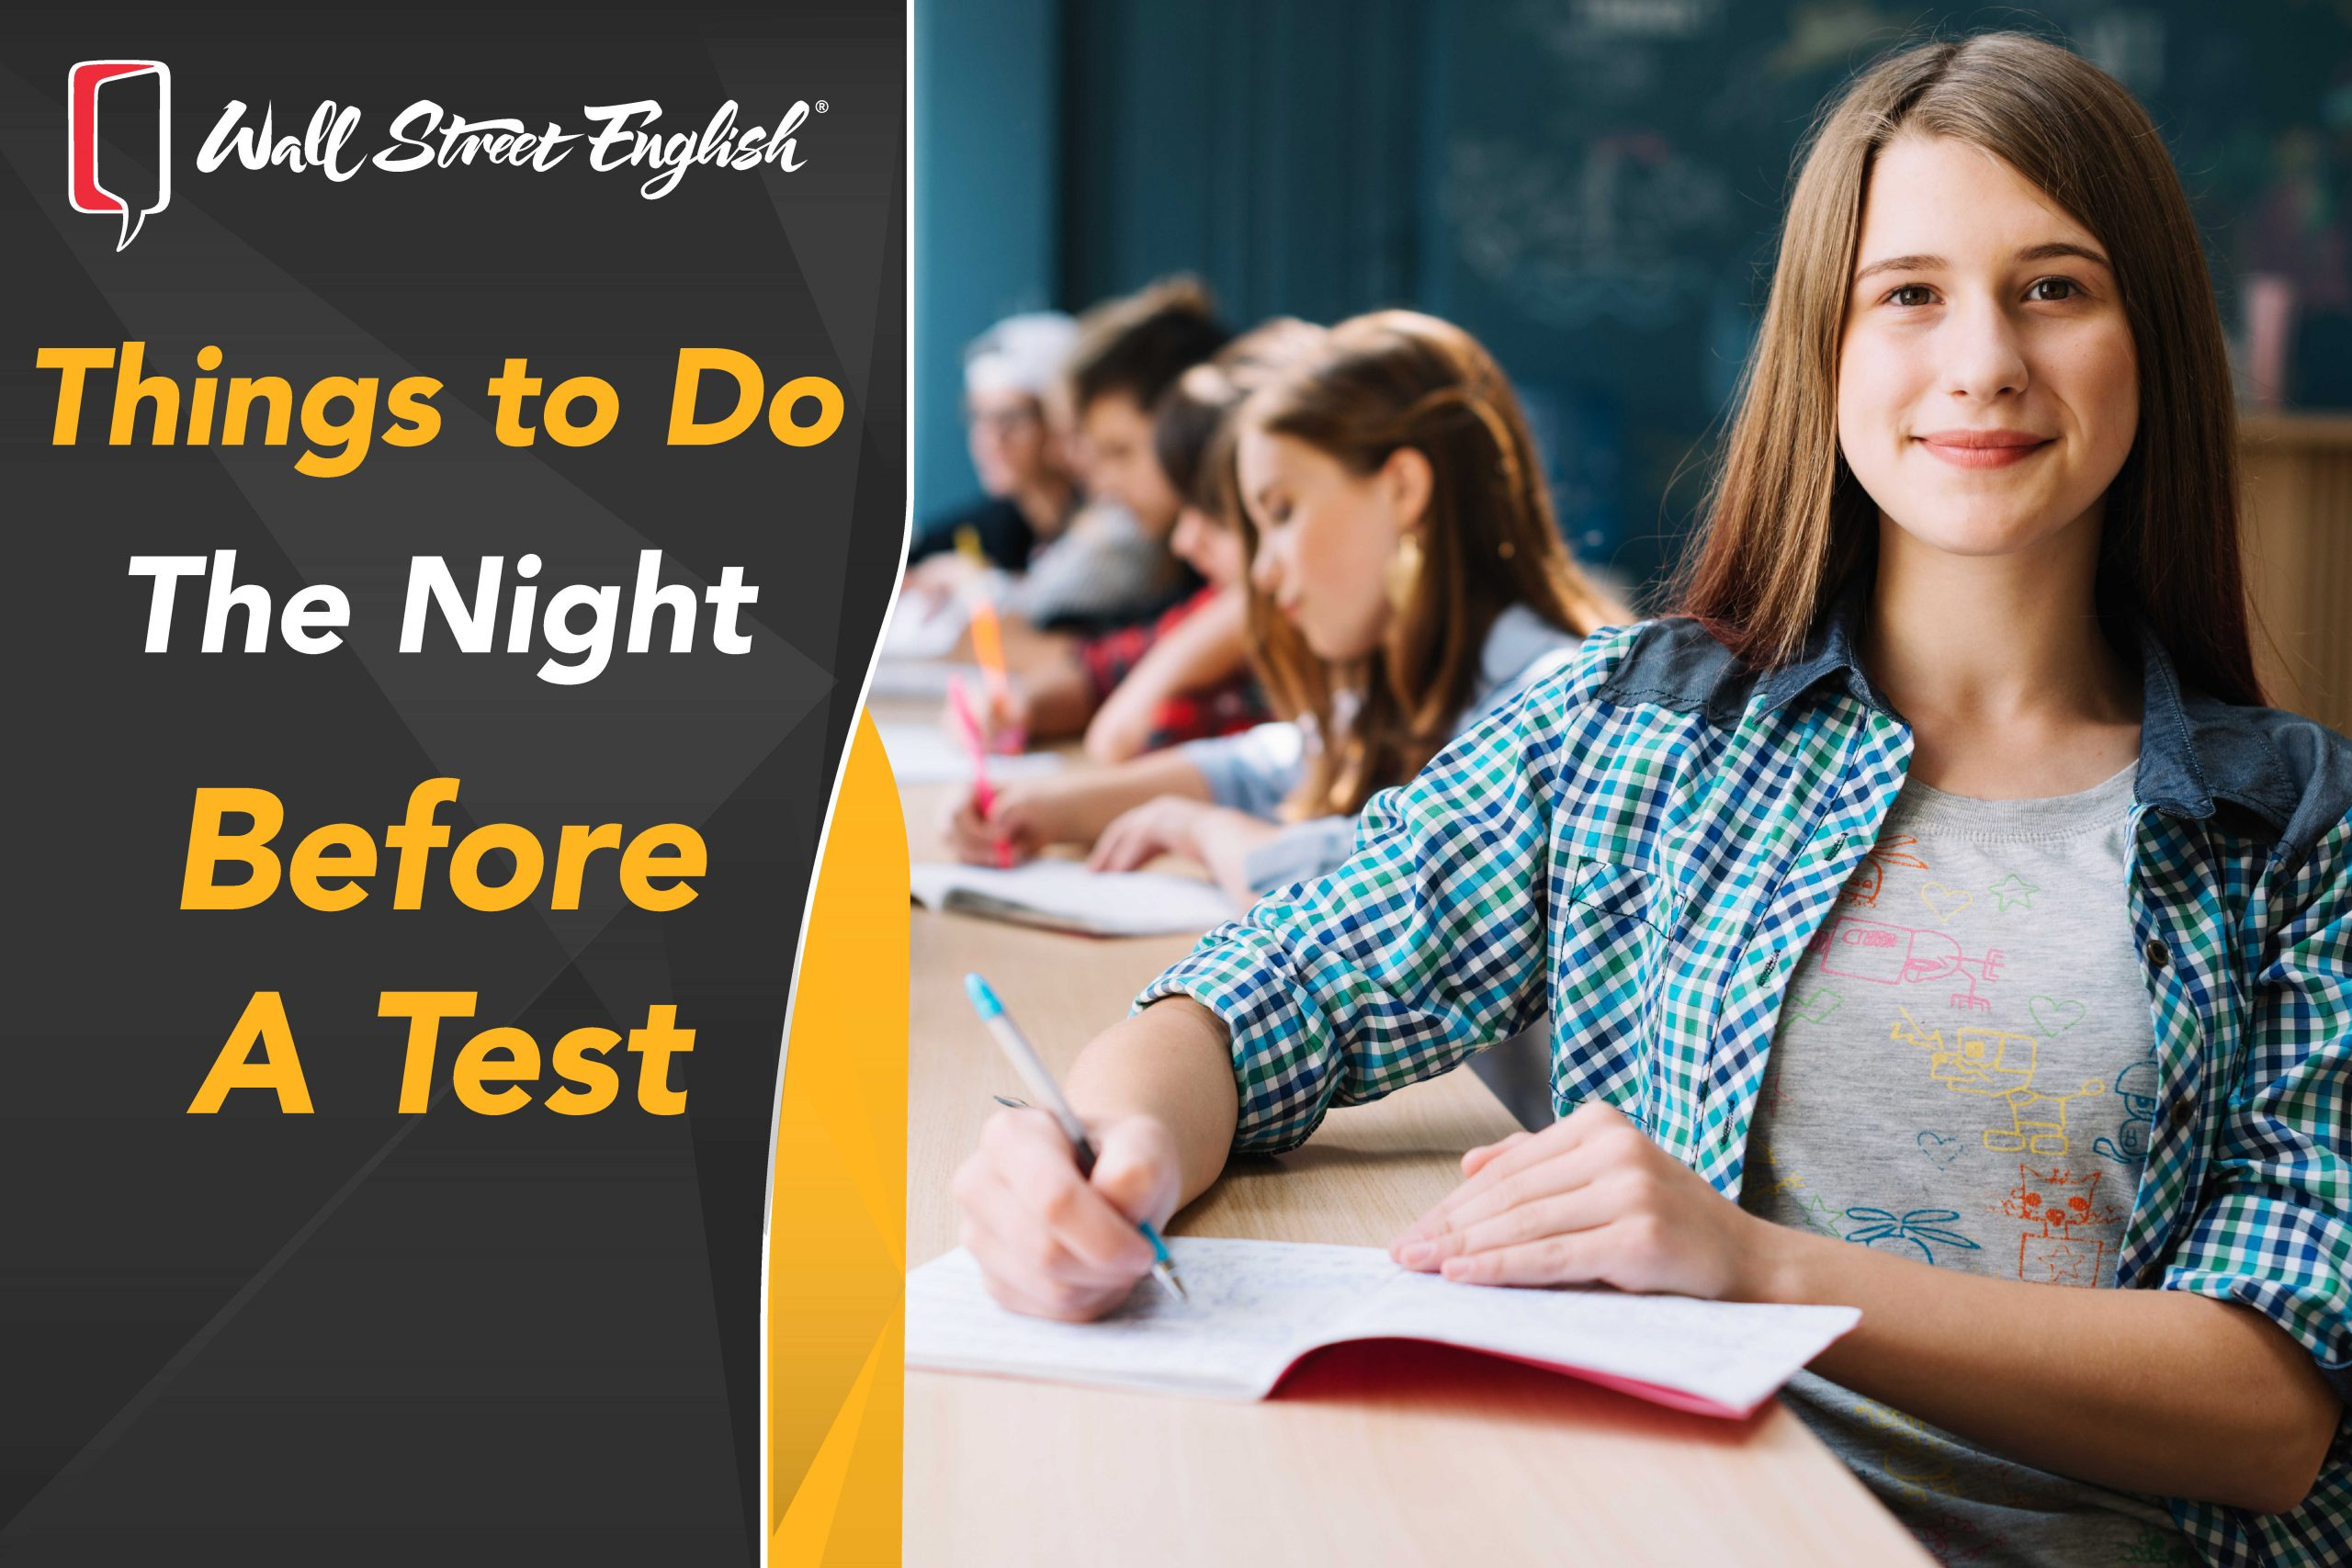 Things to Do the Night before a Test